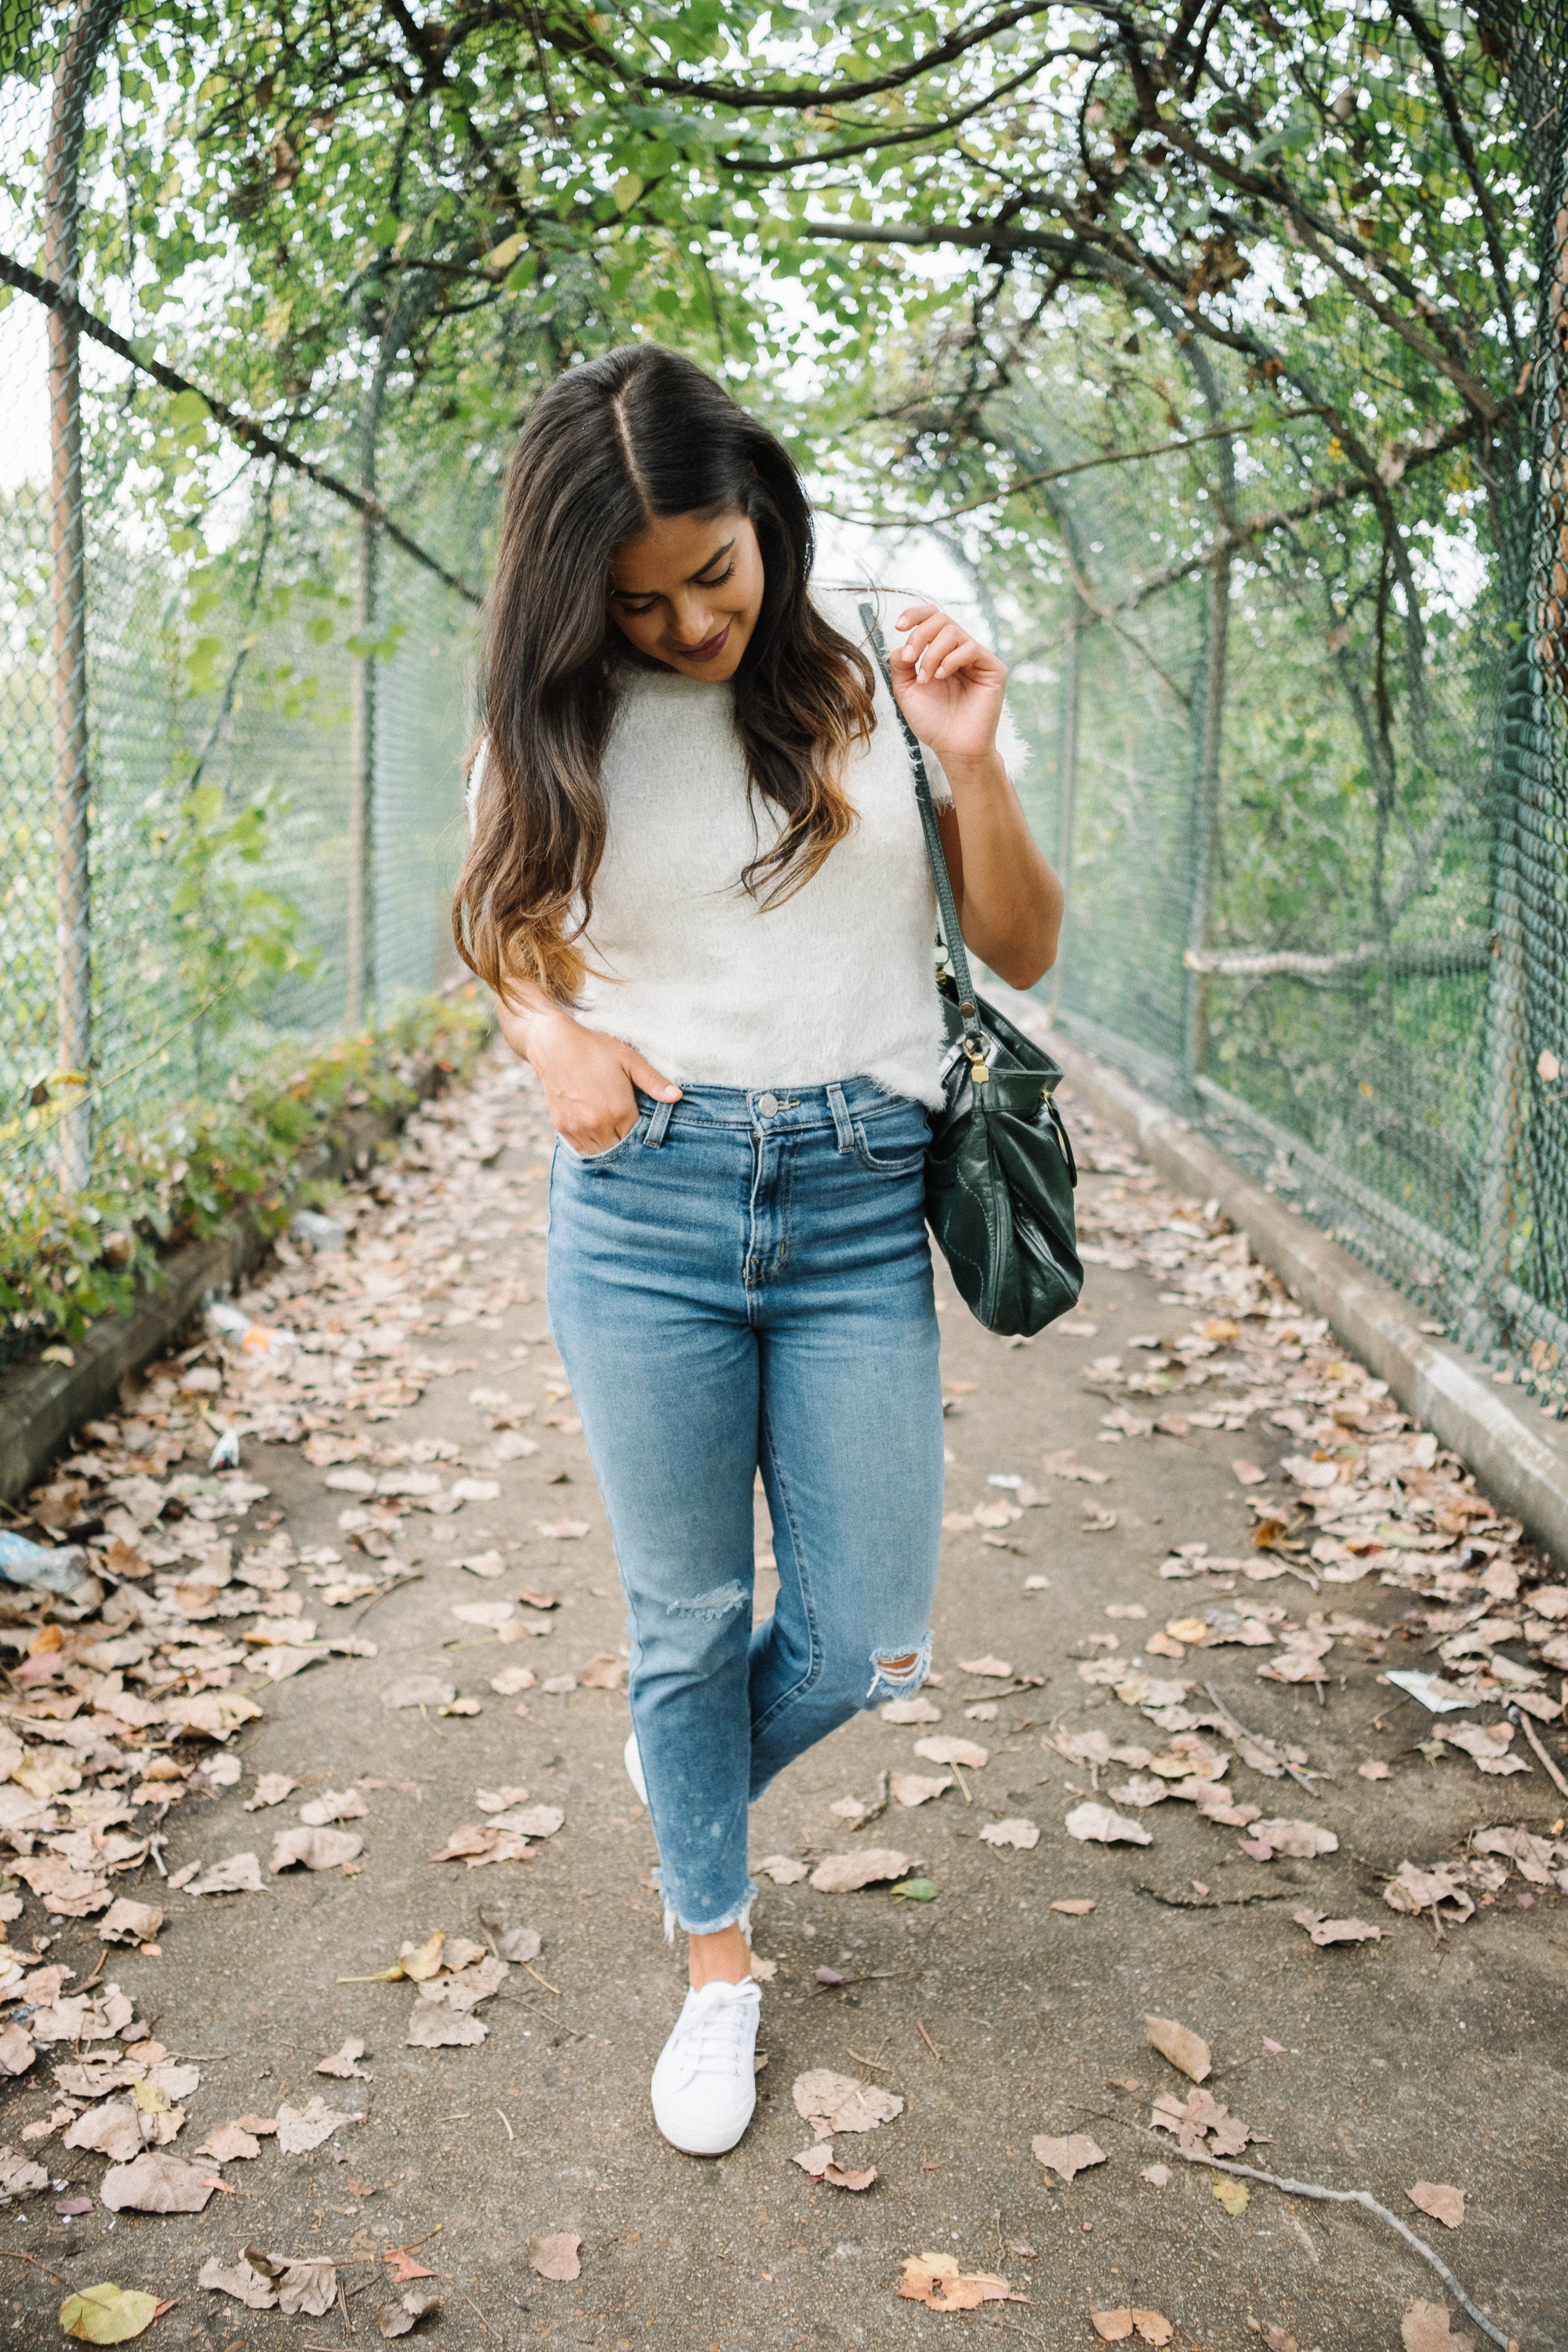 Nashville style blogger, Priya the Blog, fuzzy sweater, white Superga trainers, Fall transitional outfit, transitional Summer outfit, How to wear a fuzzy sweater, Mohair, Mo' Problems